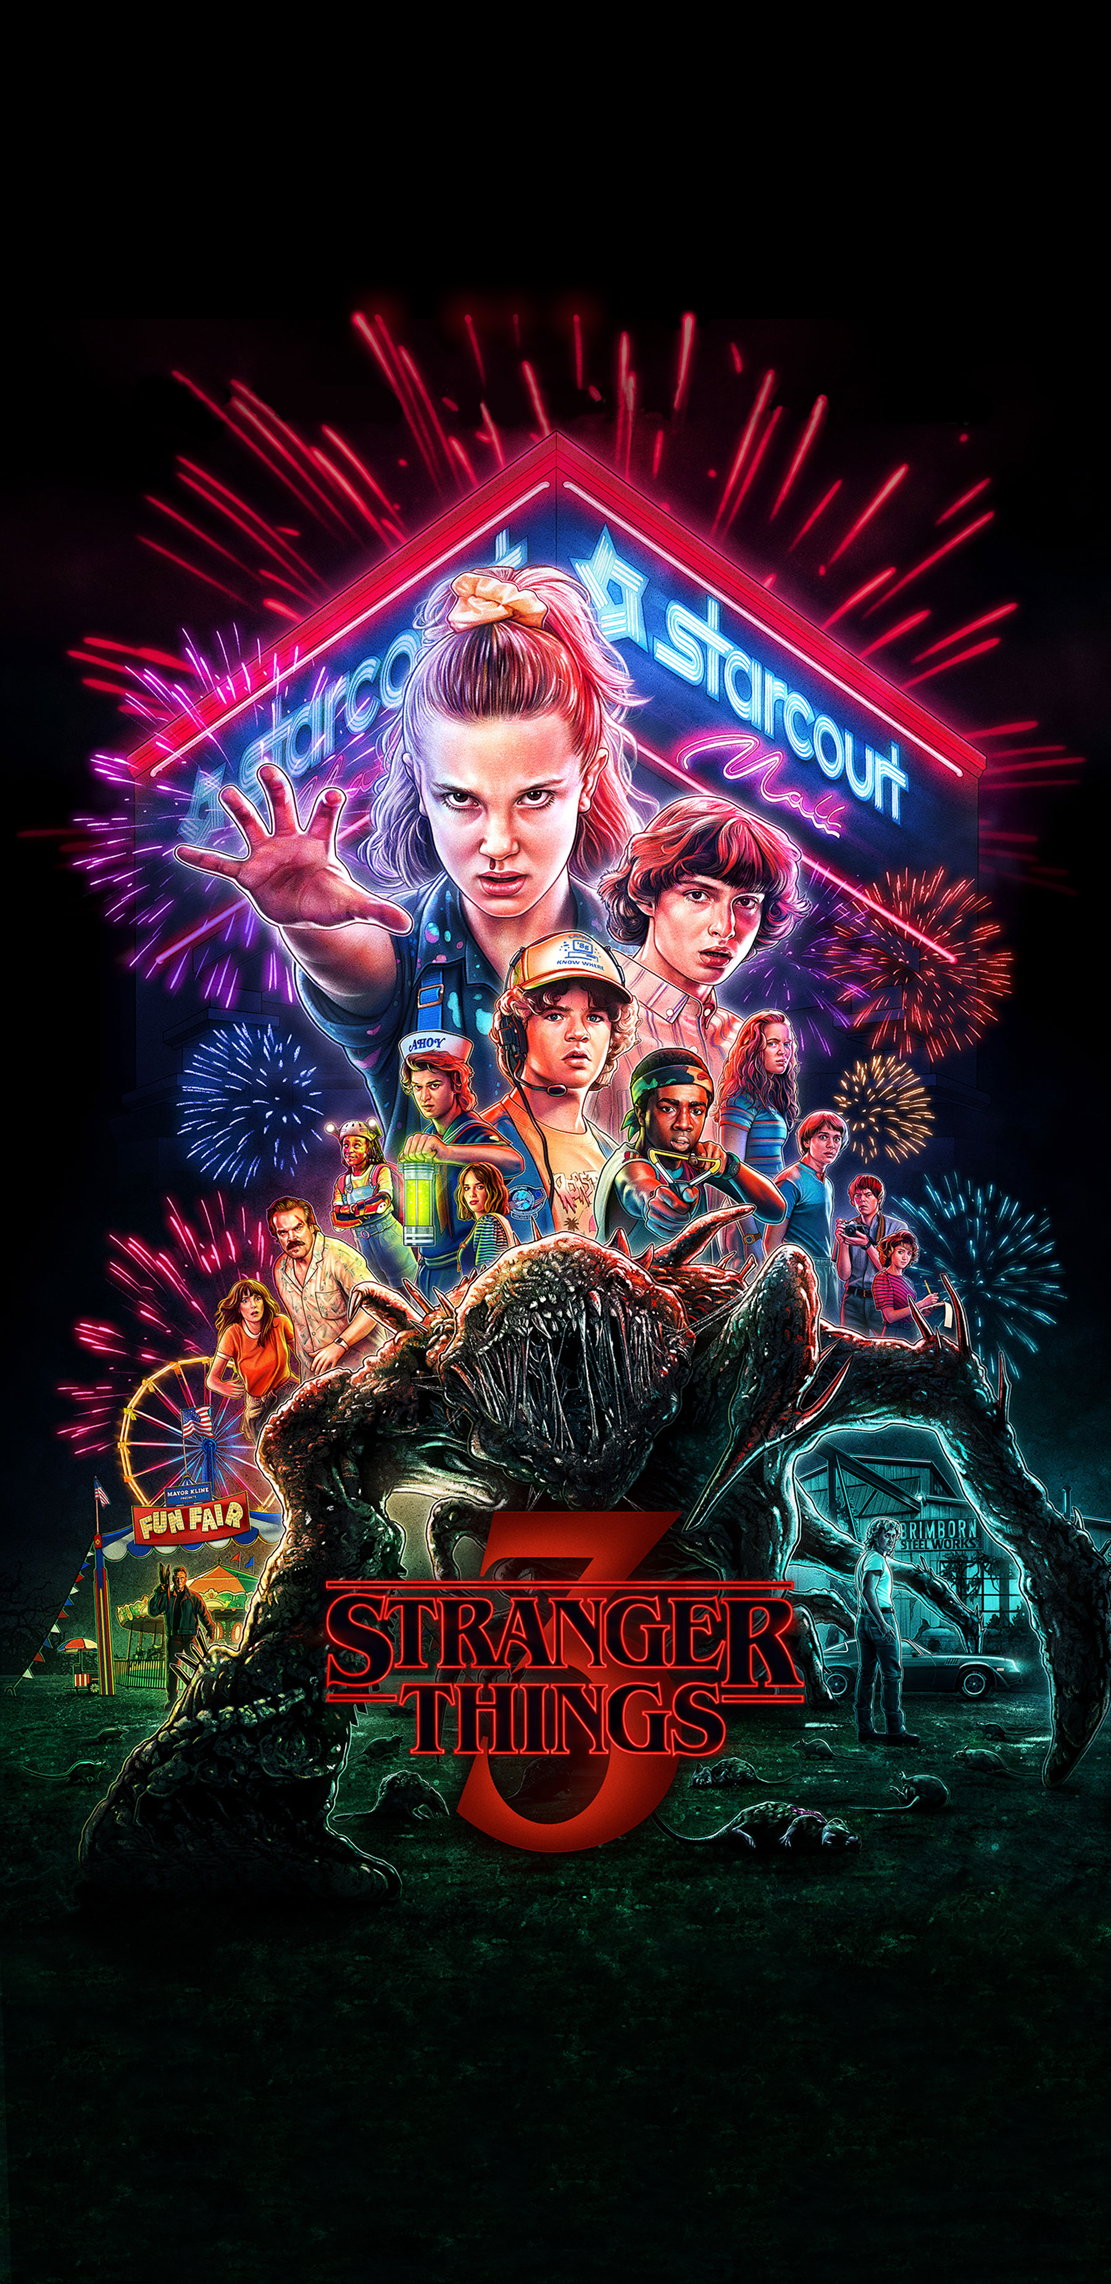 Pin by Emo_garbage on Wallpapers in 2020 Stranger things